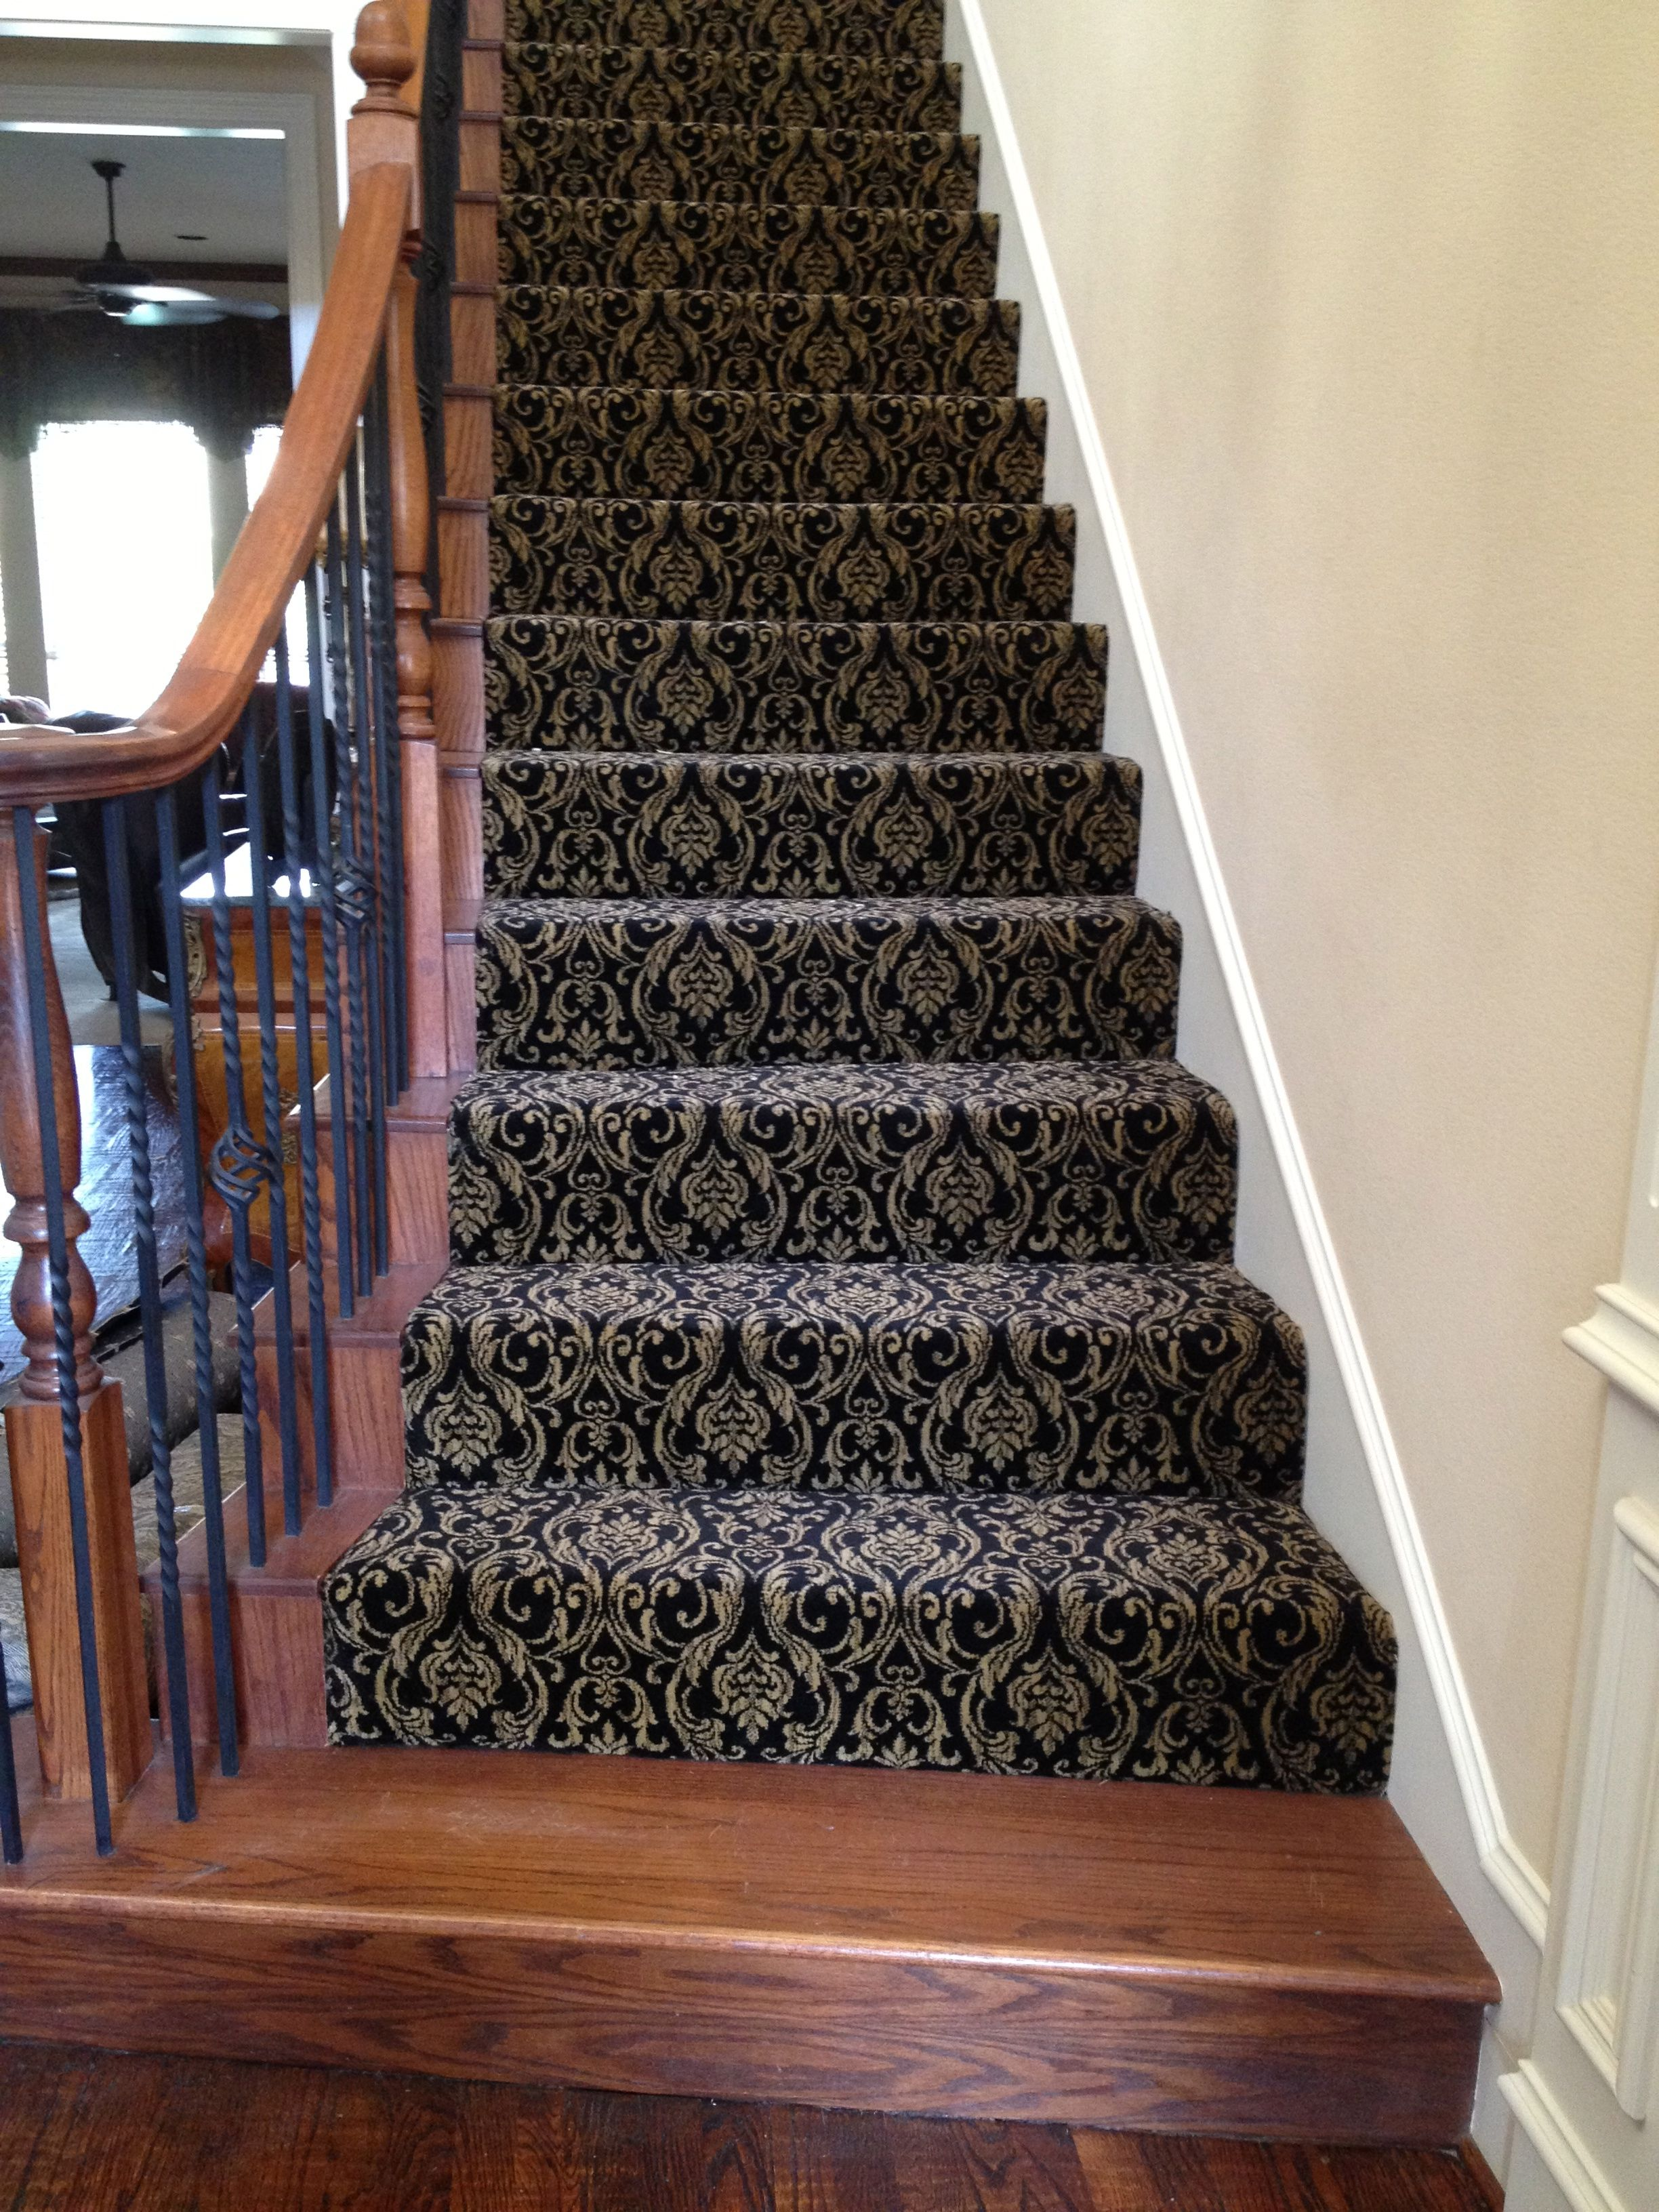 can you replace just a single stair if the stairway is carpeted